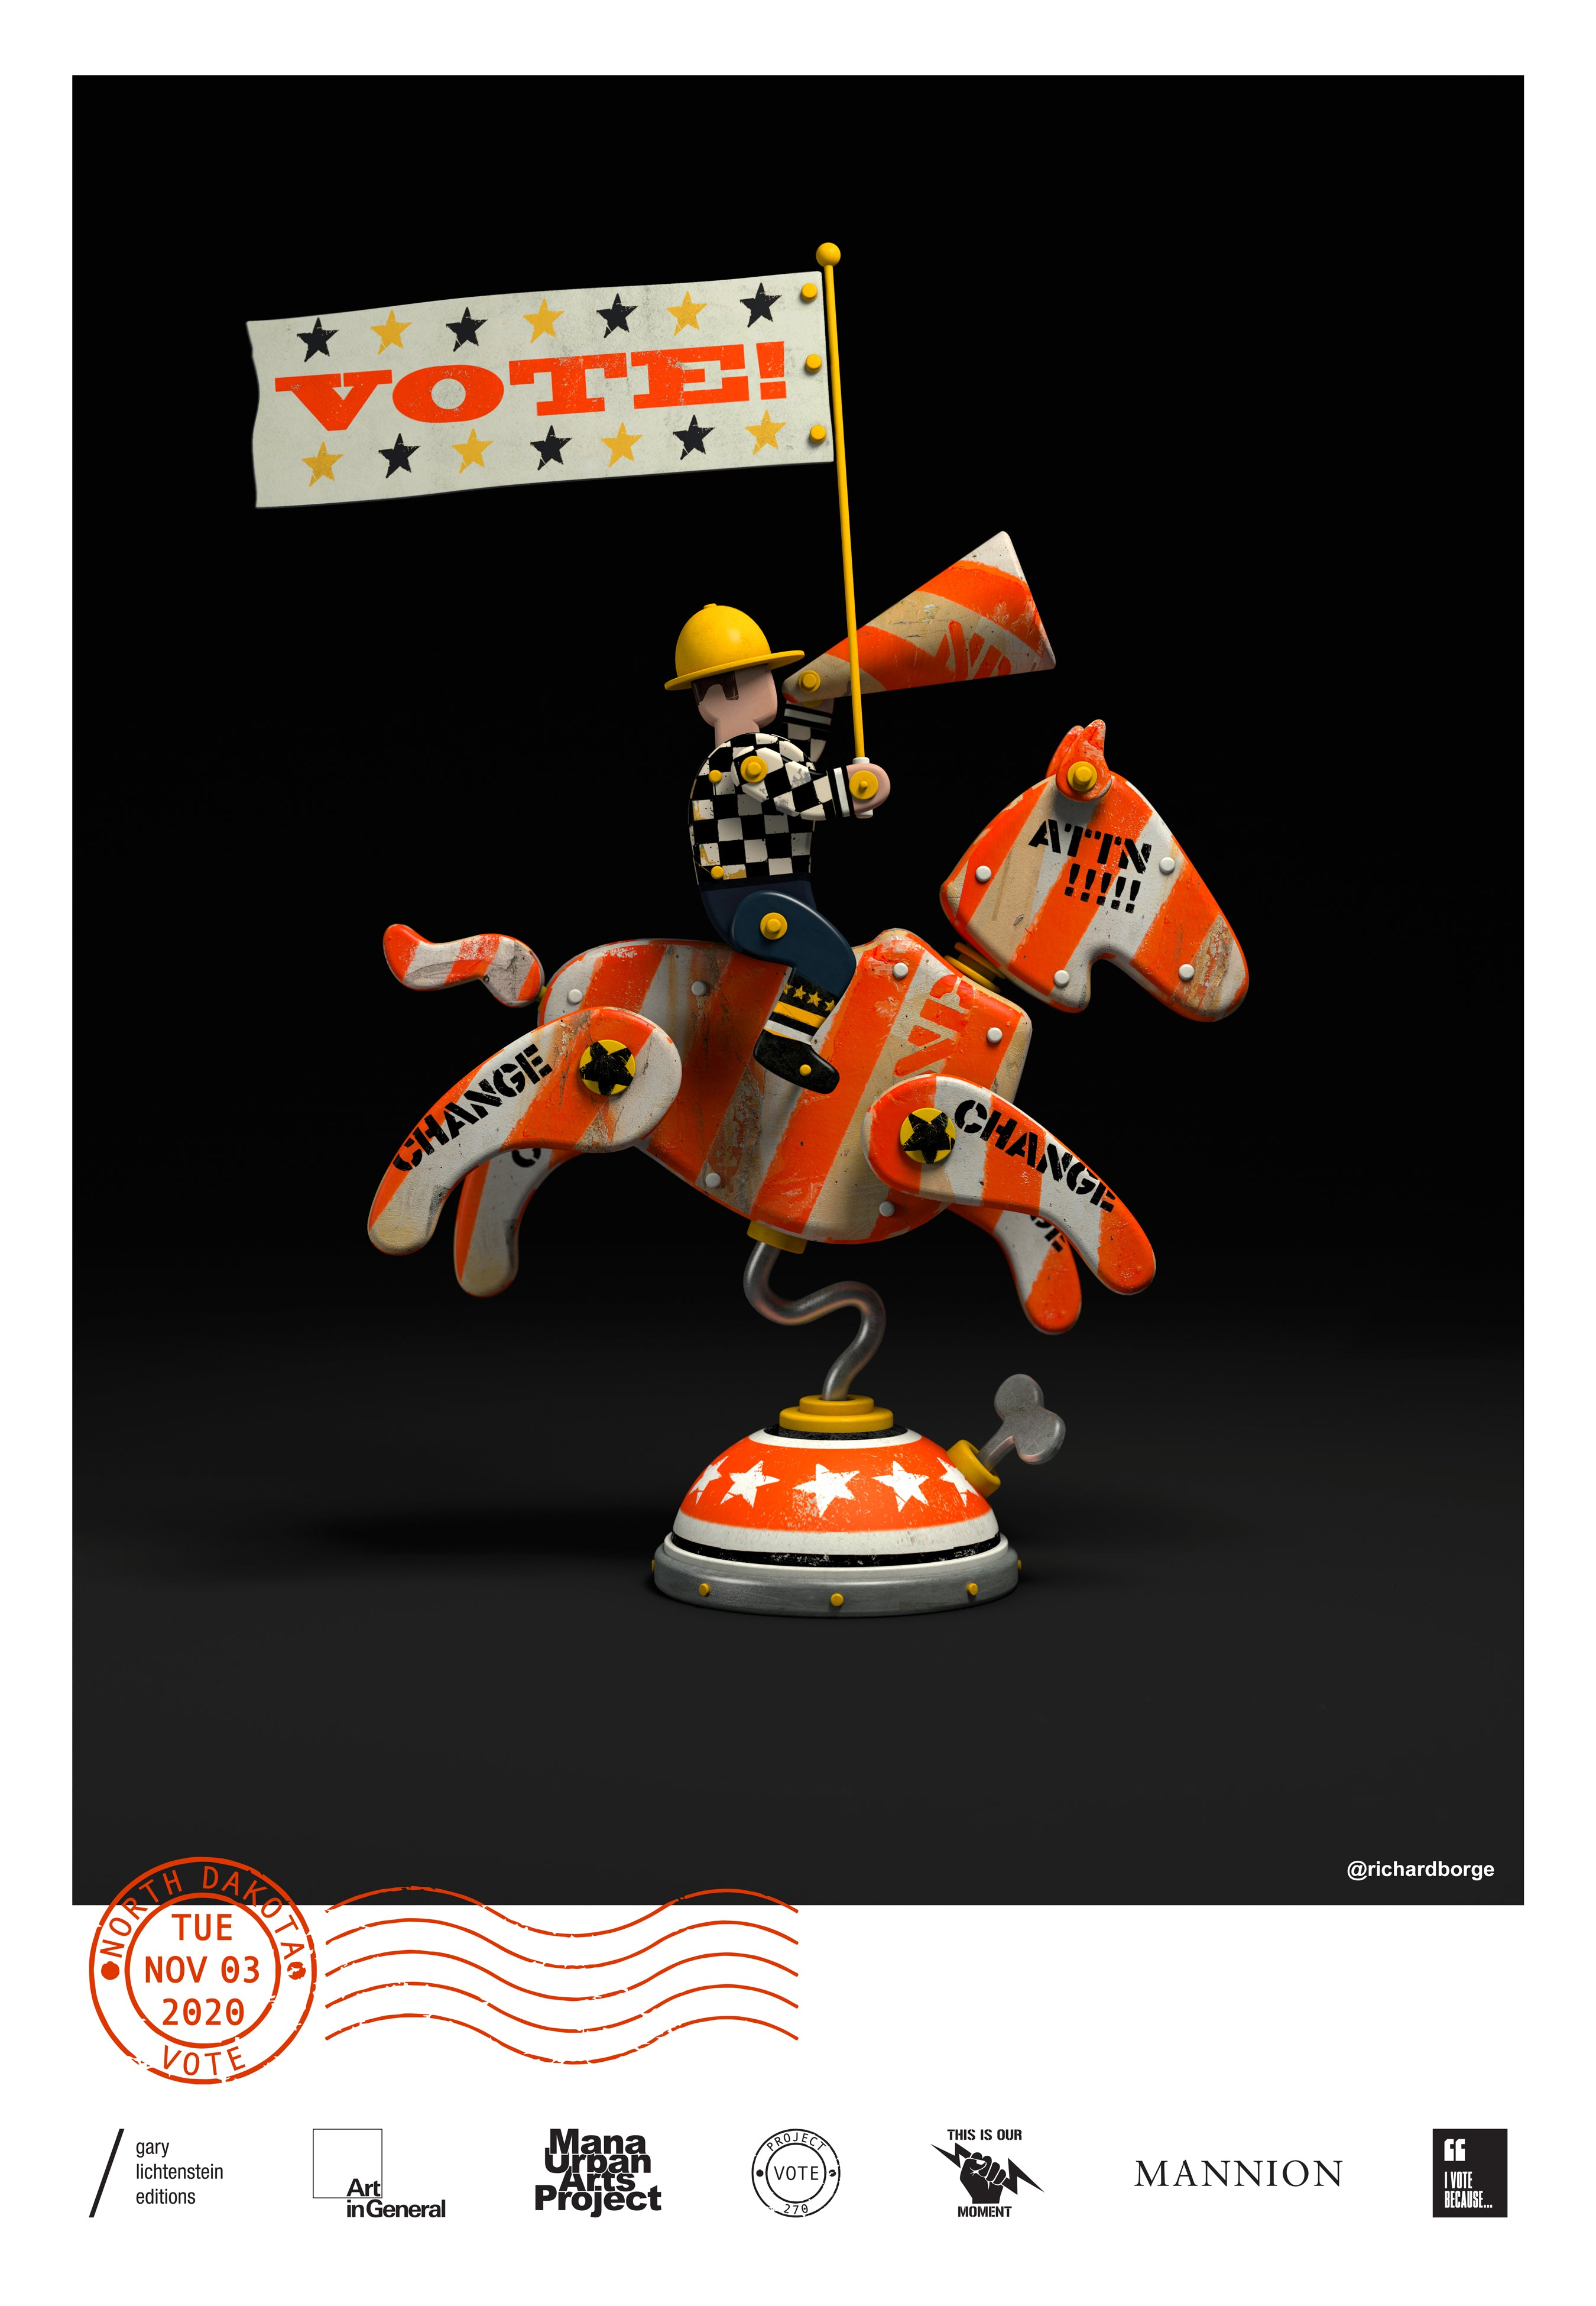 North Dakota Get Out The Vote Poster by Richard Borge